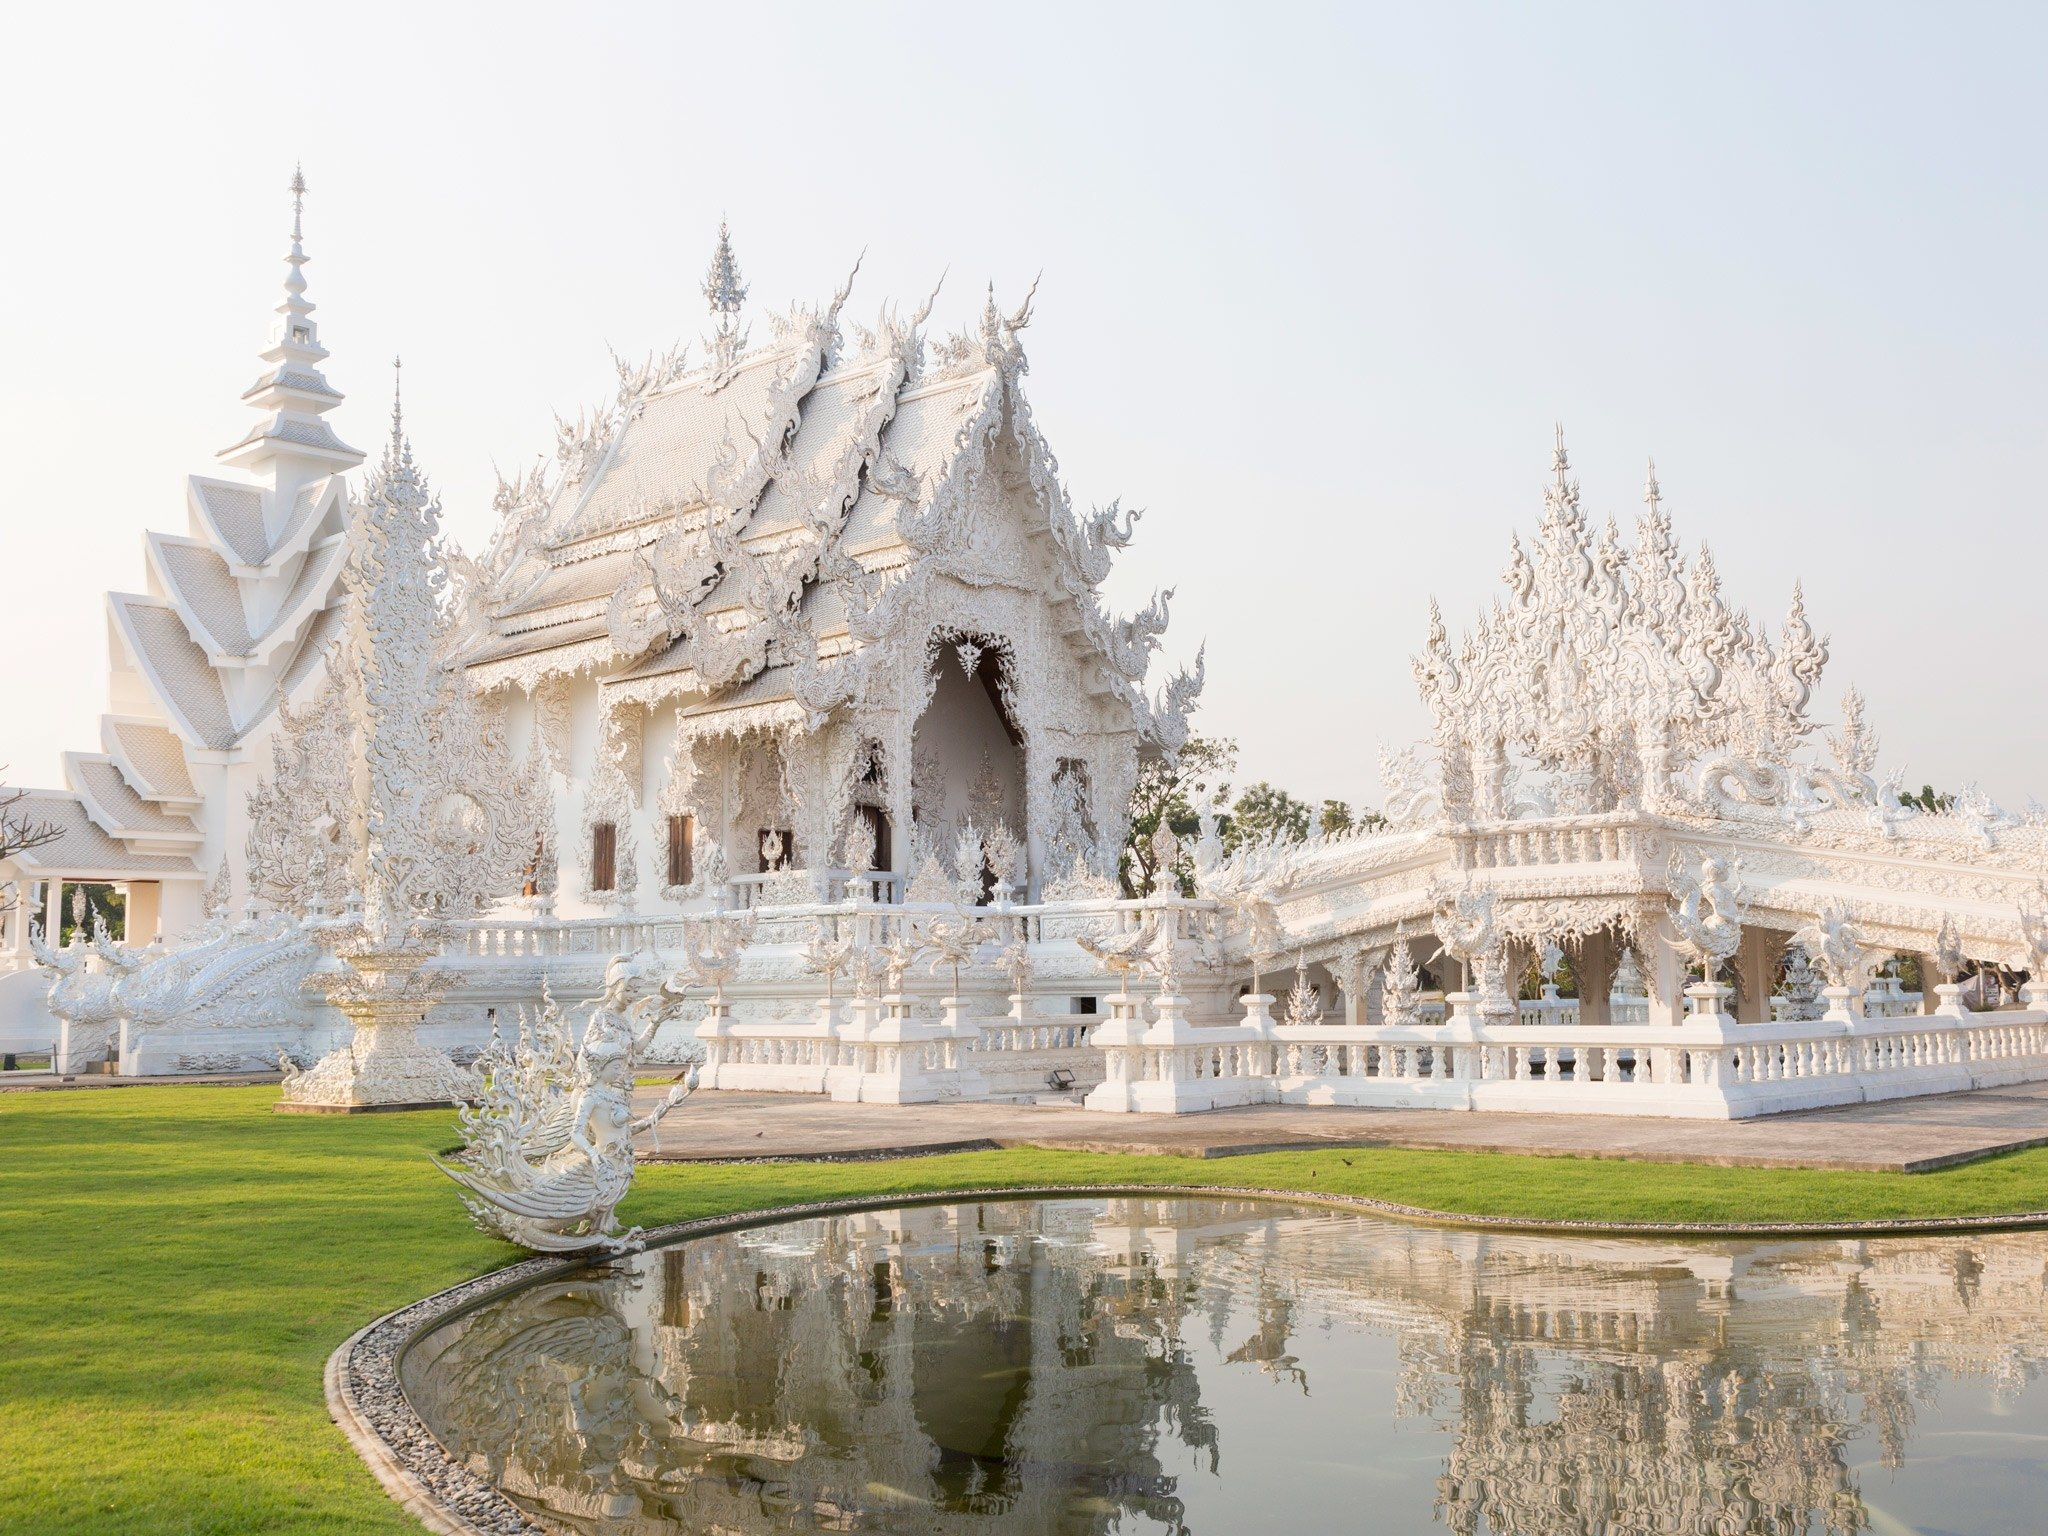 2048x1536 The World's Most Beautiful Buddhist Temples - Condé Nast Traveler